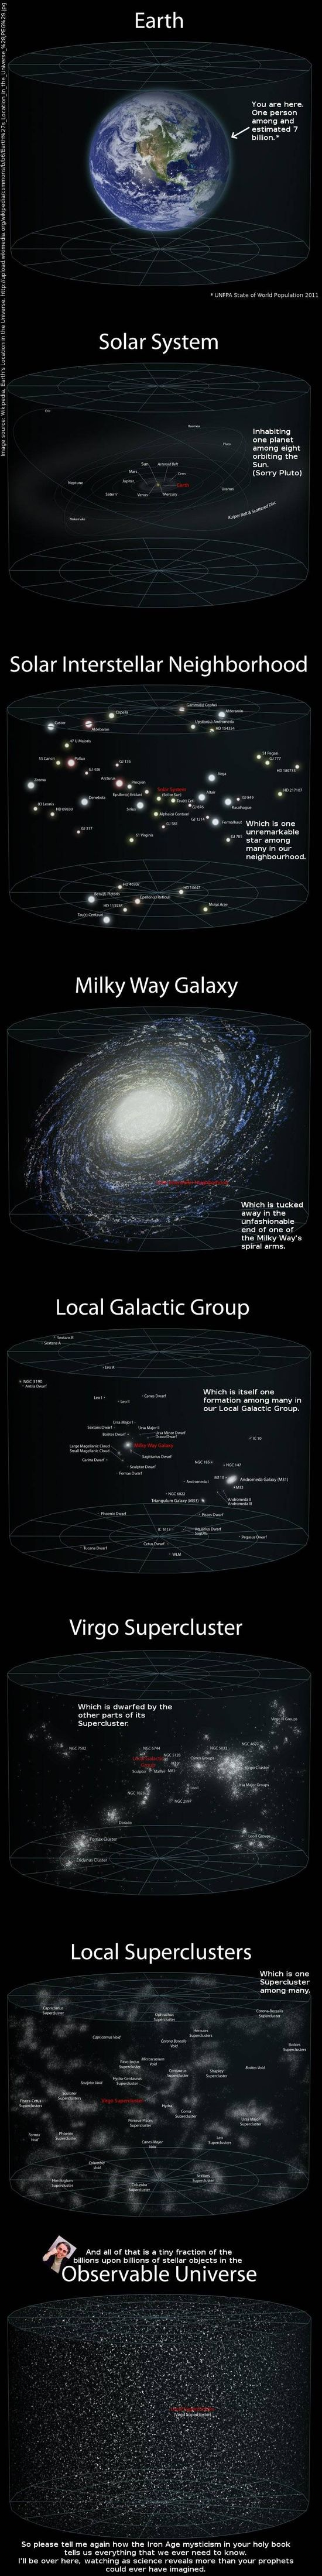 From Earth to the observable universe.